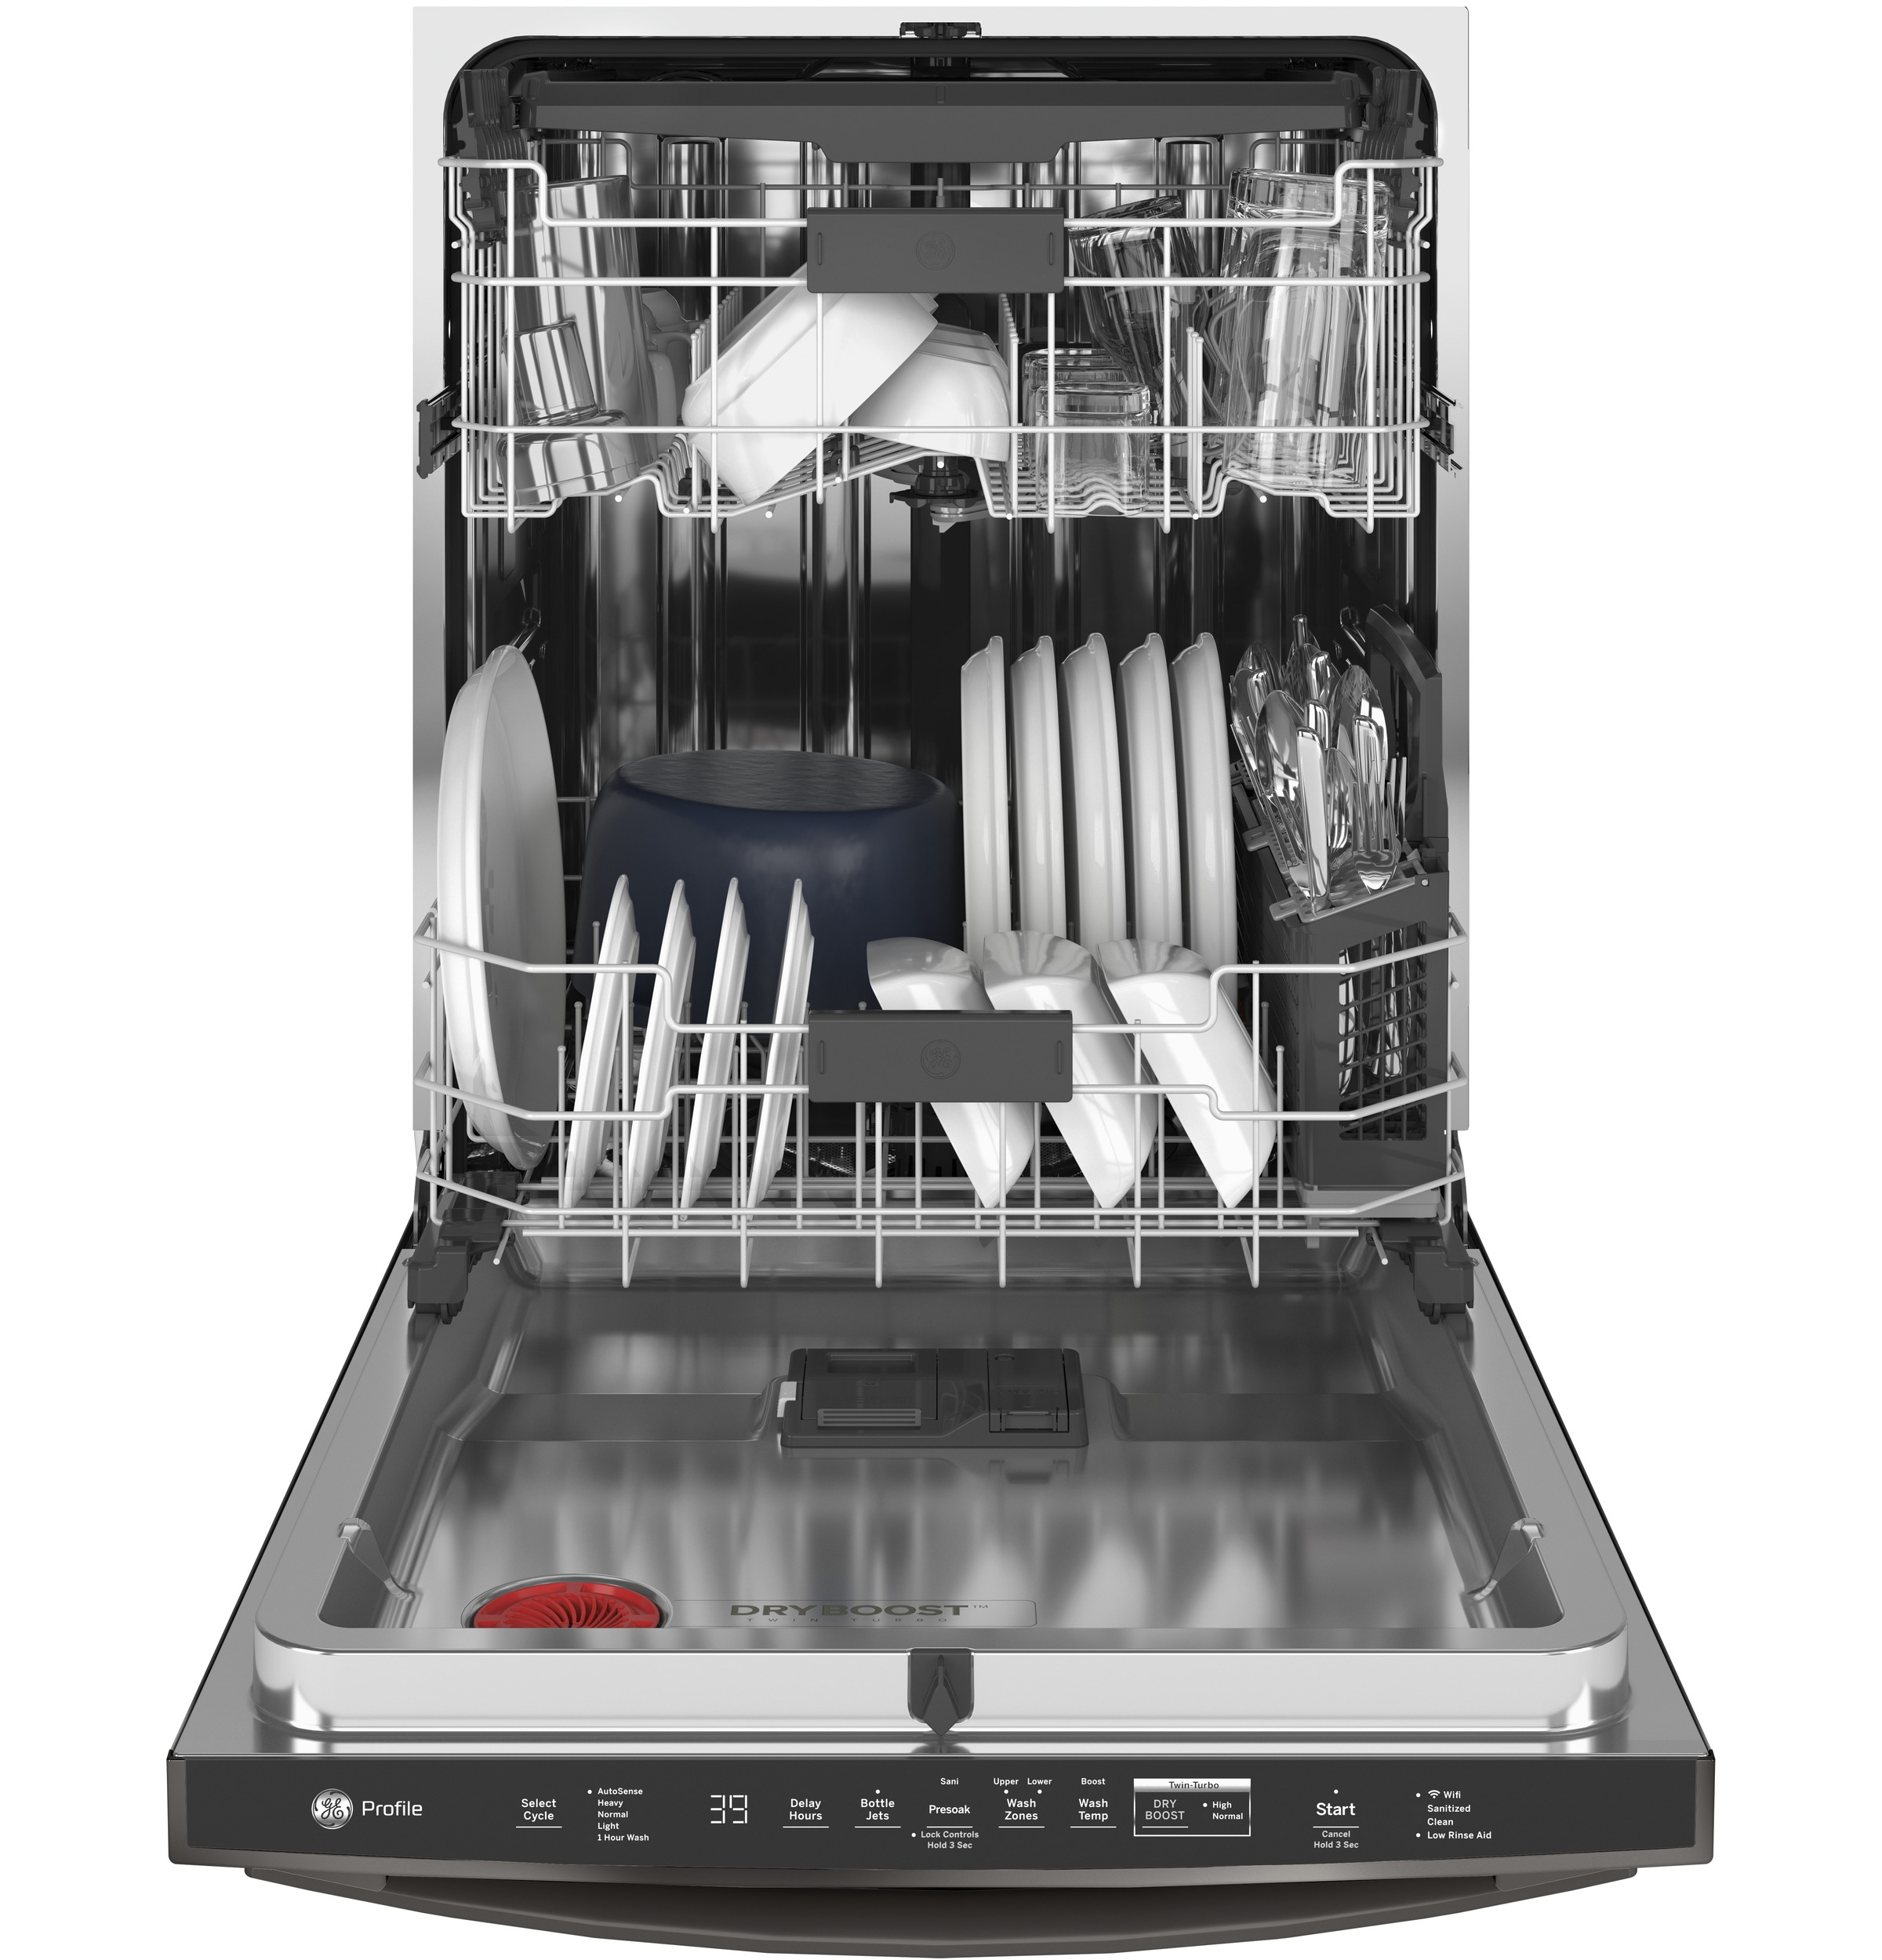 Model: PDT785SBNTS | GE Profile GE Profile™ Stainless Steel Interior Dishwasher with Hidden Controls